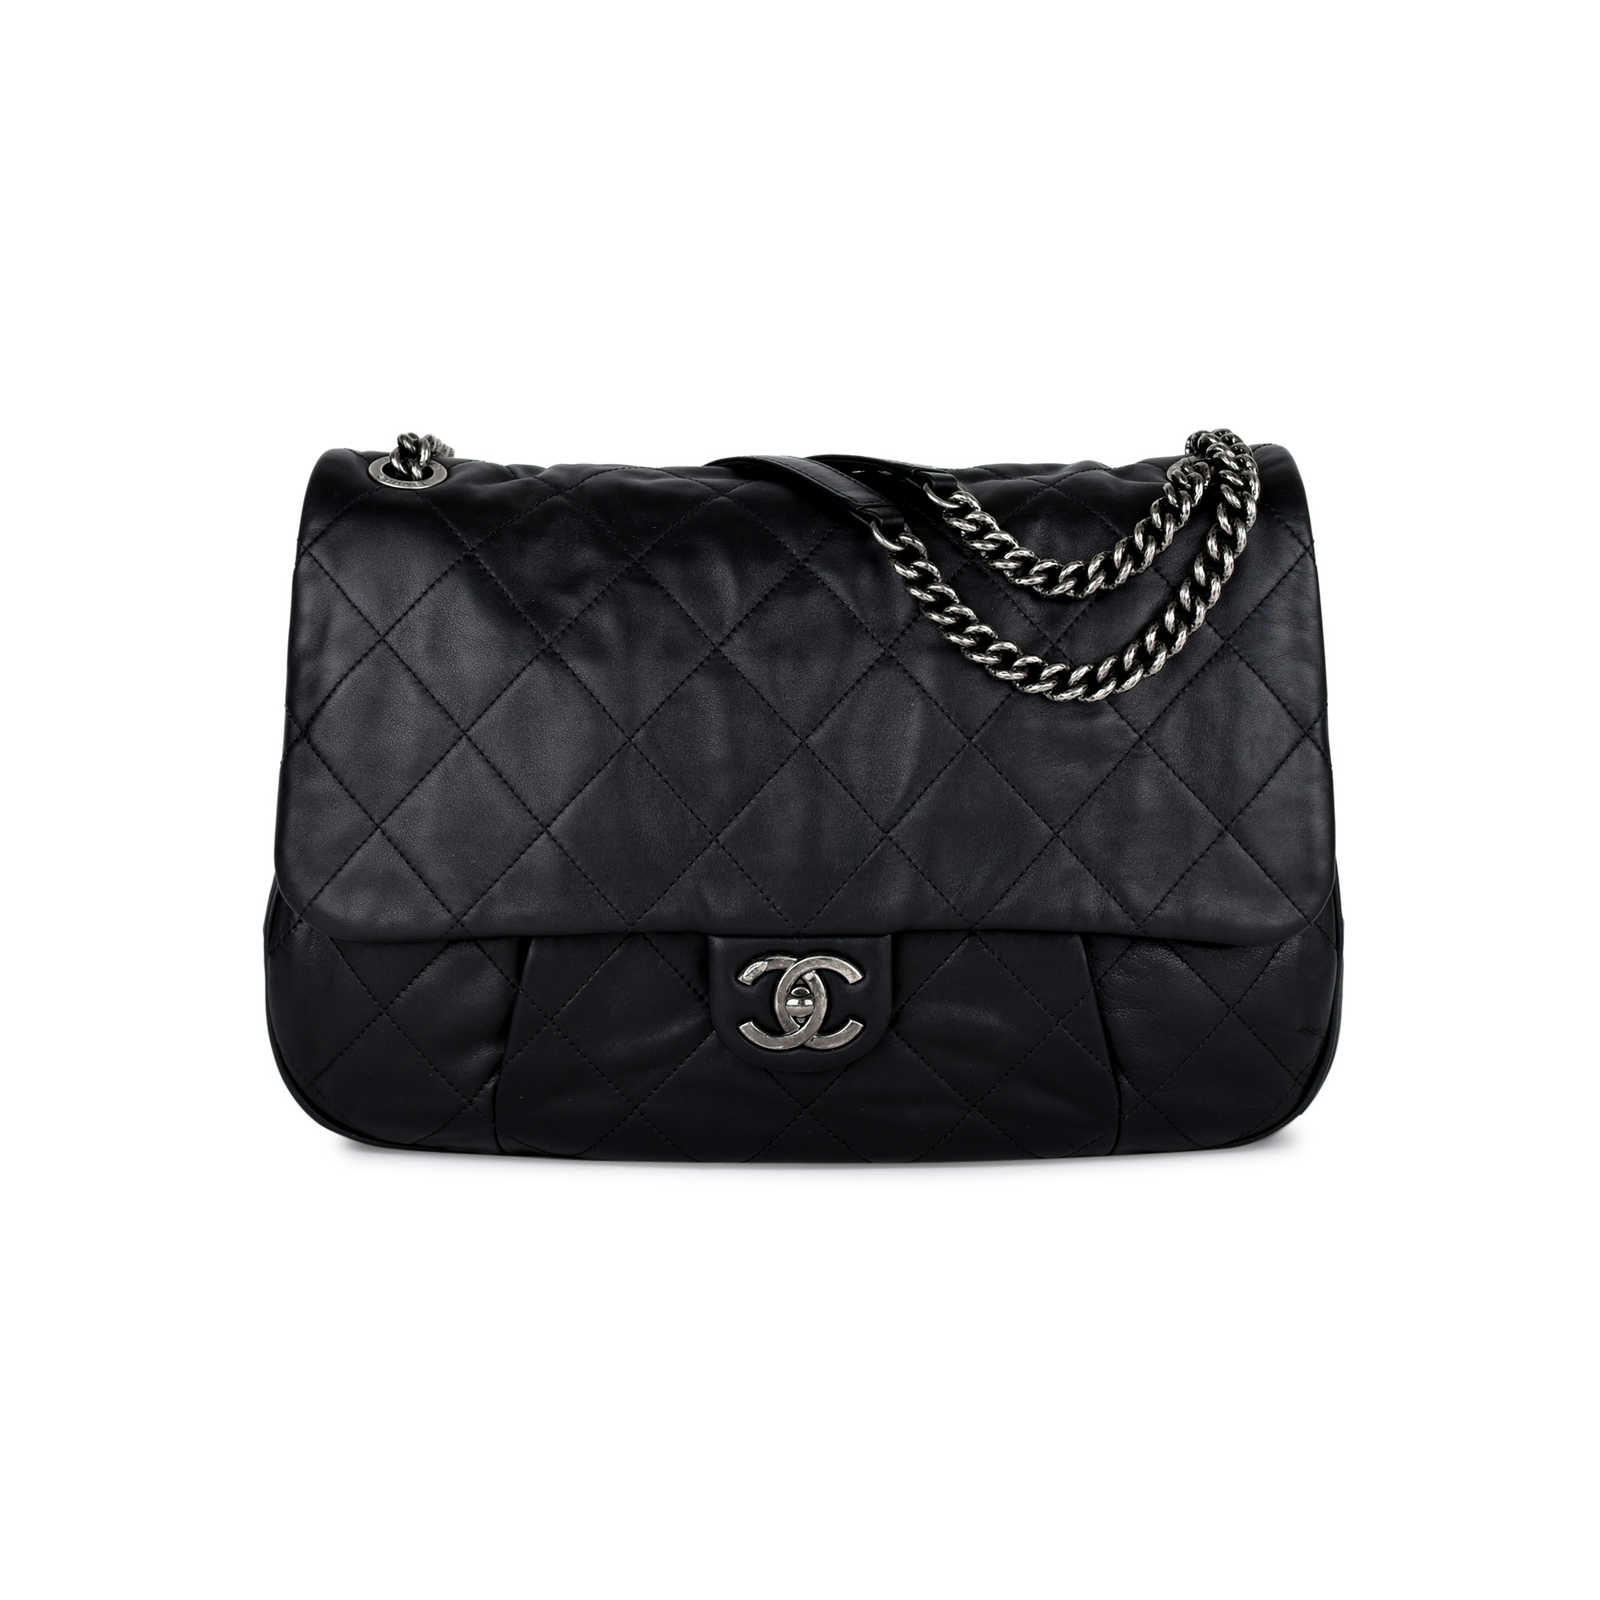 efeb0c9fe256 Authentic Pre Owned Chanel Coco Pleats Flap Bag Pss 442 00020